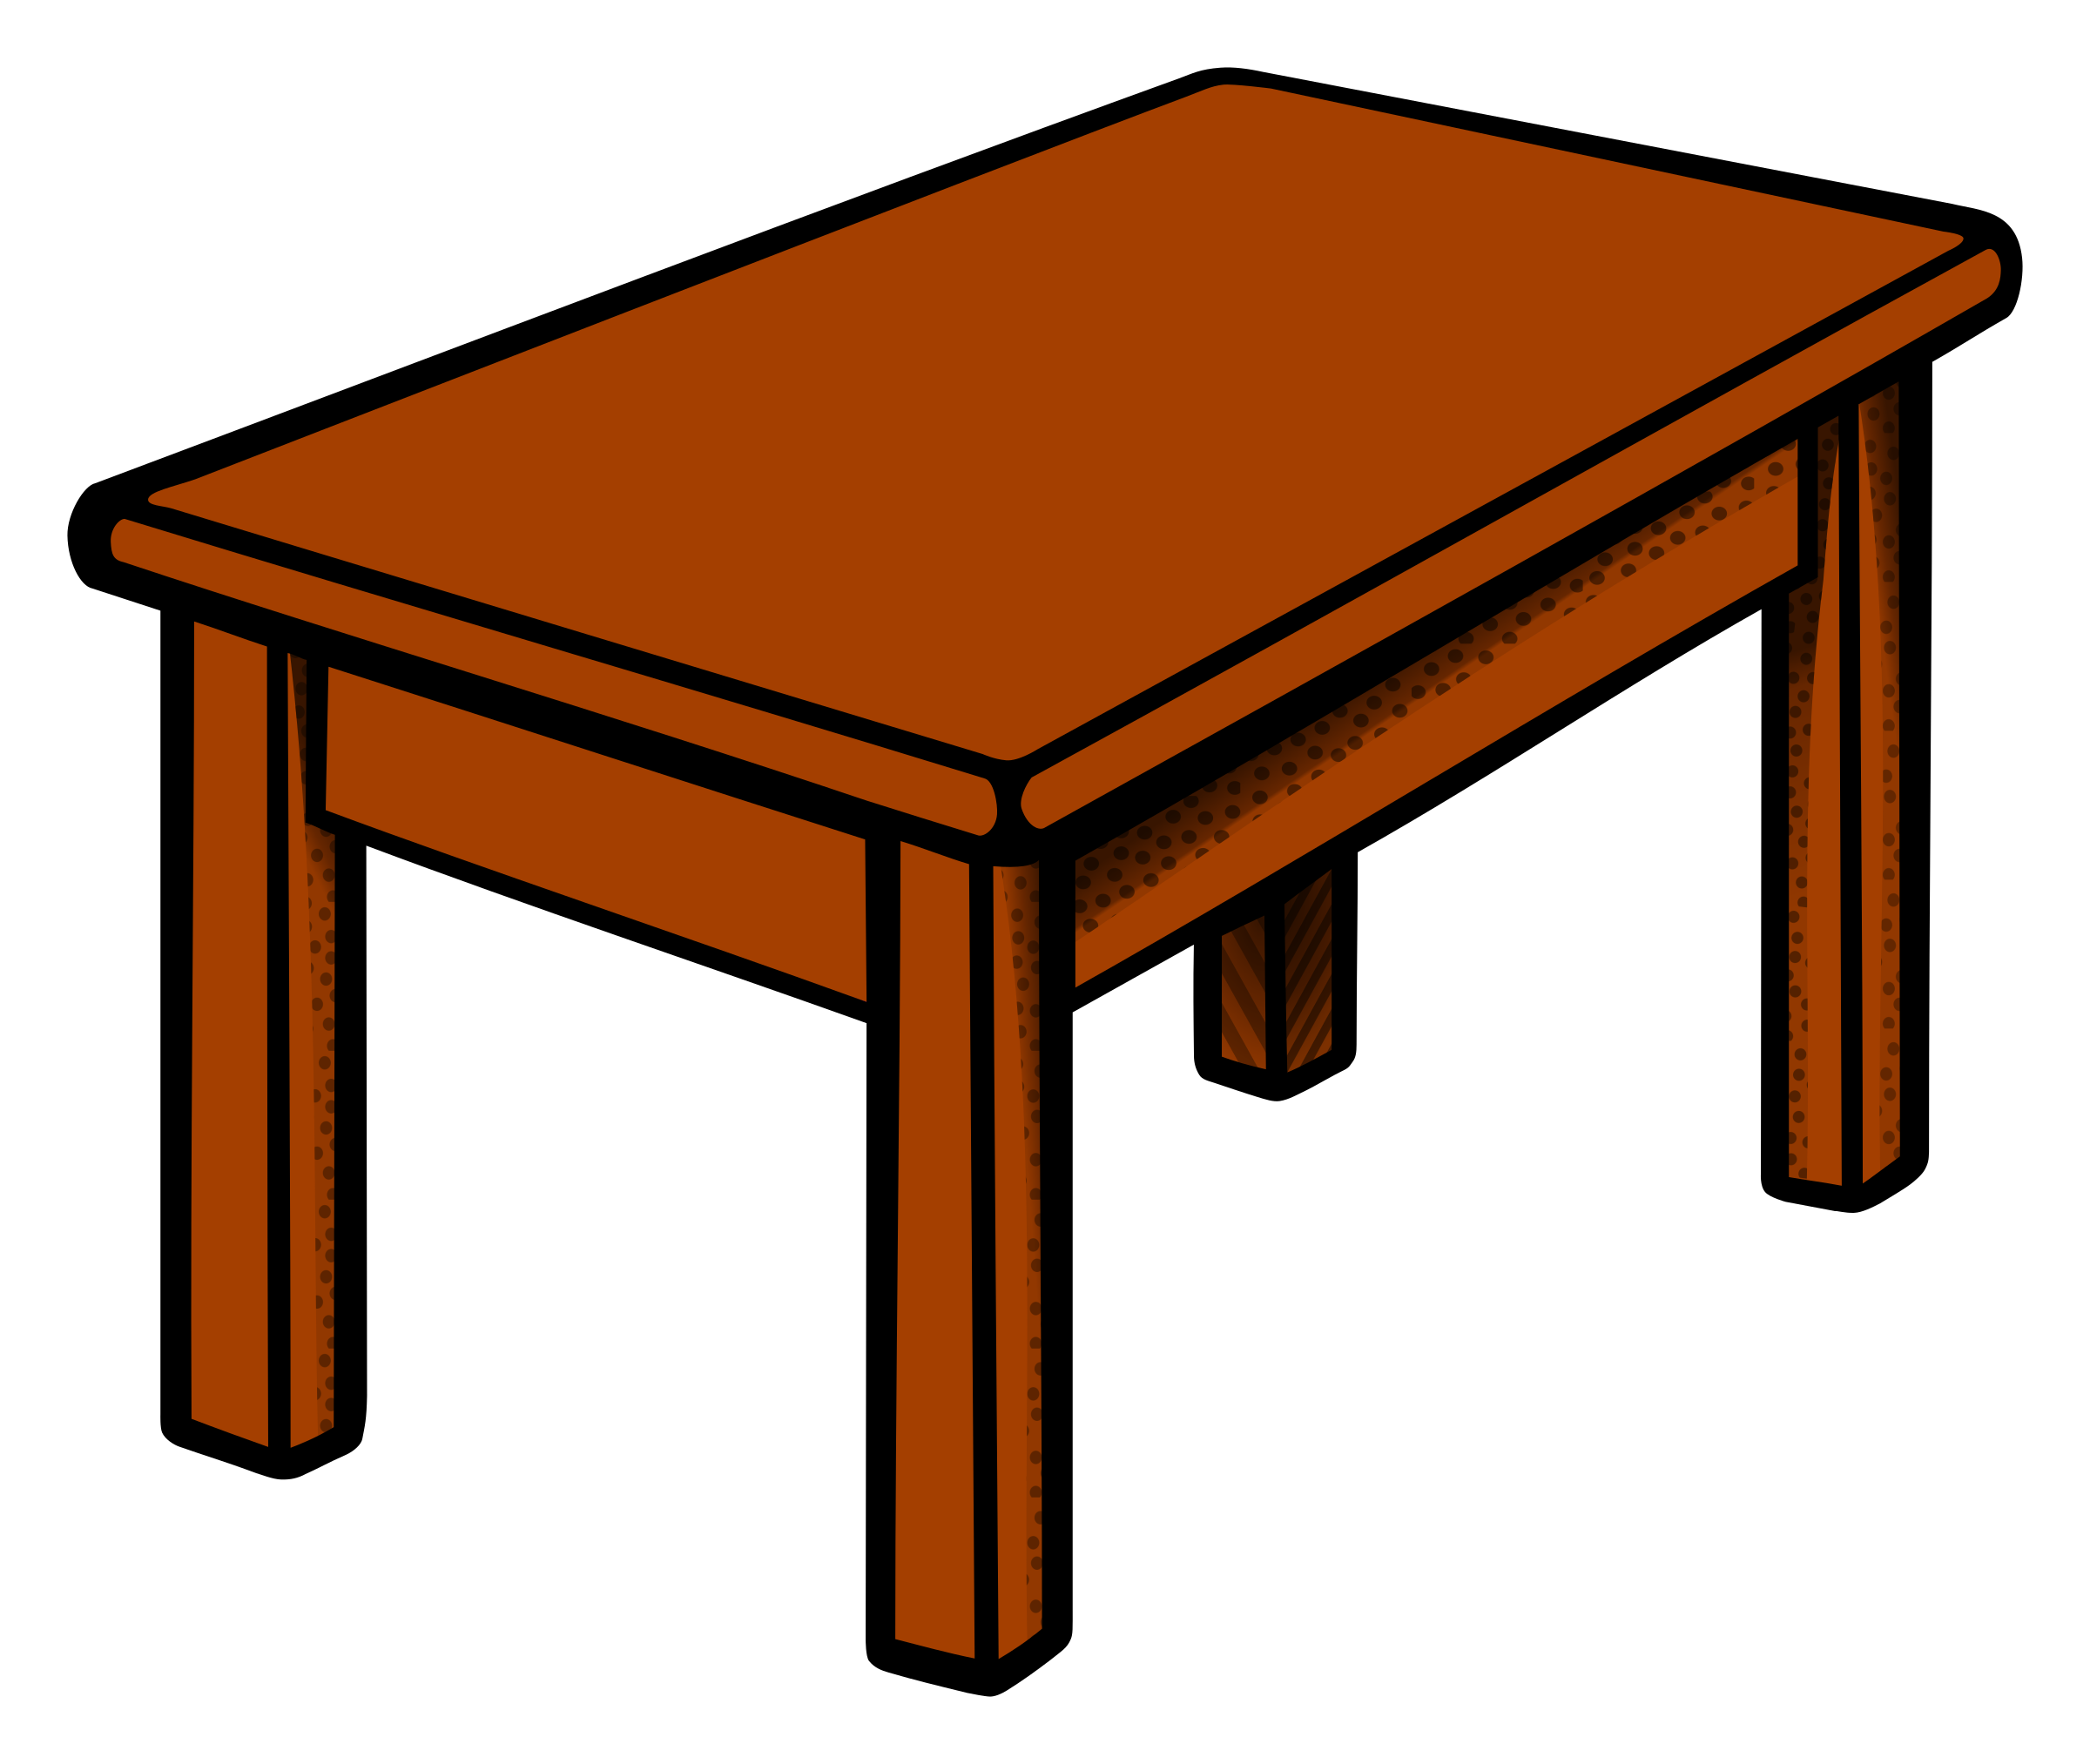 School table clipart 6 » Clipart Station.